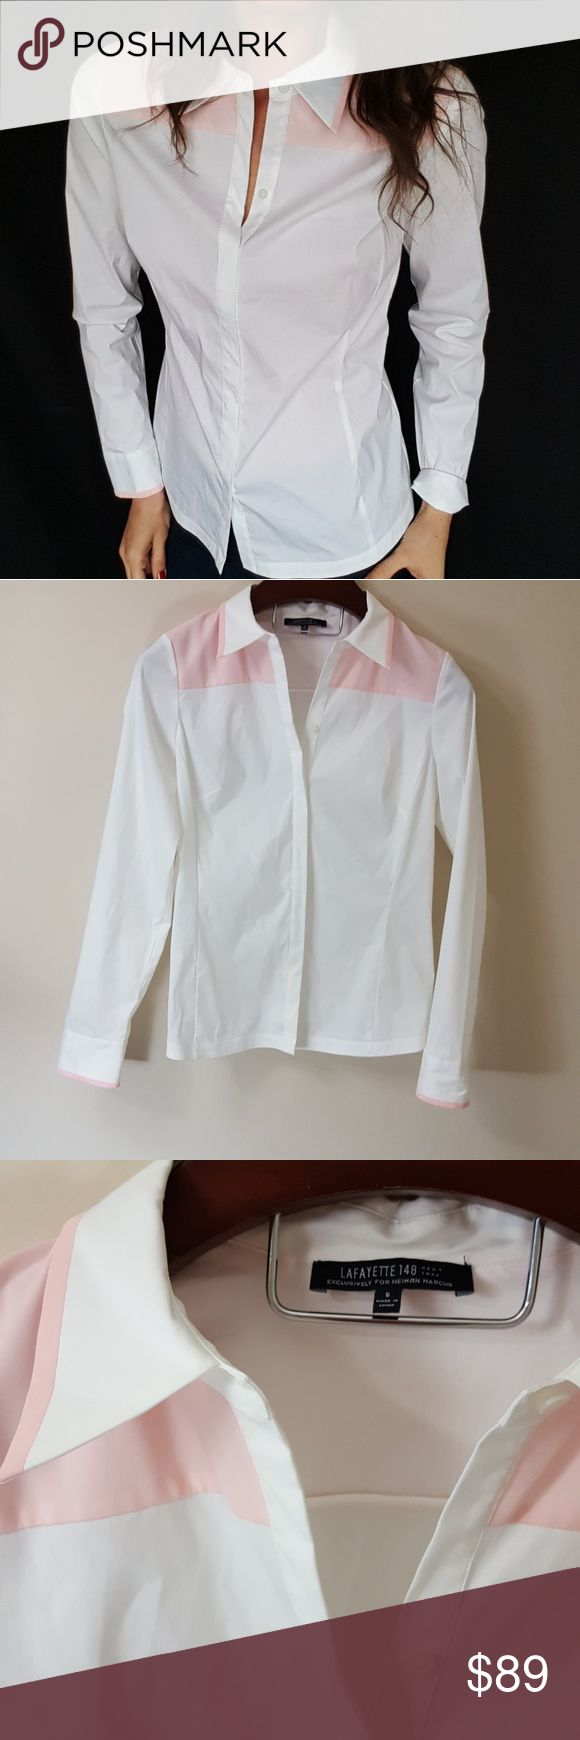 Lafayette 148 white and PINK button up size 6 -C4 Beautiful Lafayette 148 exclusively for Neimun Marcus. Size 6, loose fit with stretch. 18 inches across chest. Used item: inspected for quality and wear. Pictures show any signs of wear. See cuff for imperfection. Bundle up! Offers always welcome:) Lafayette 148 New York Tops